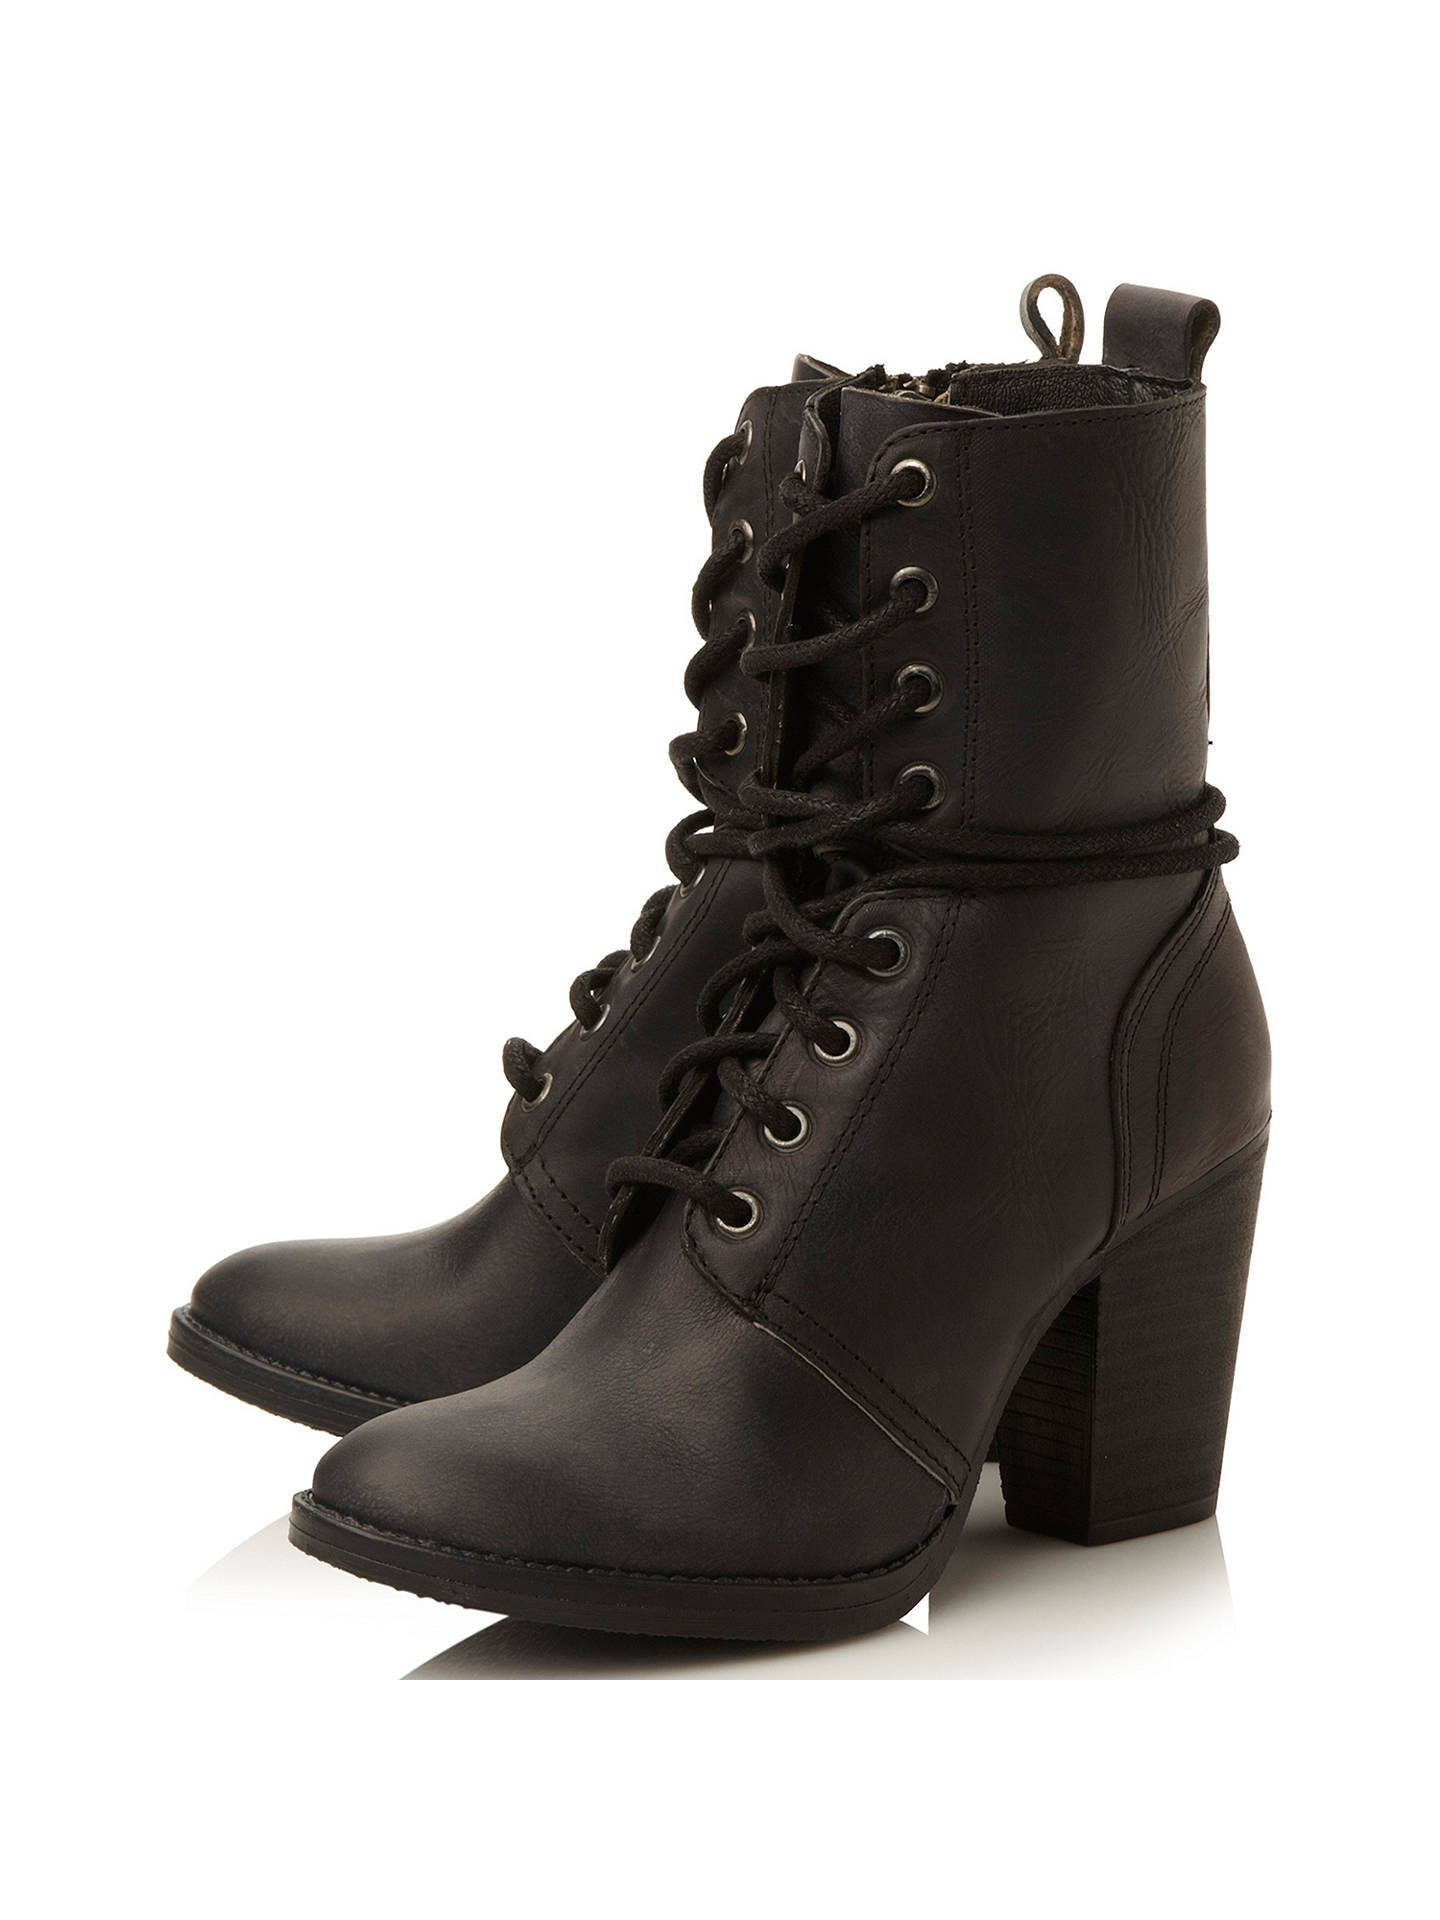 best loved new styles 100% authentic Steve Madden Jupiter Block Heeled Lace Up Ankle Boots at ...